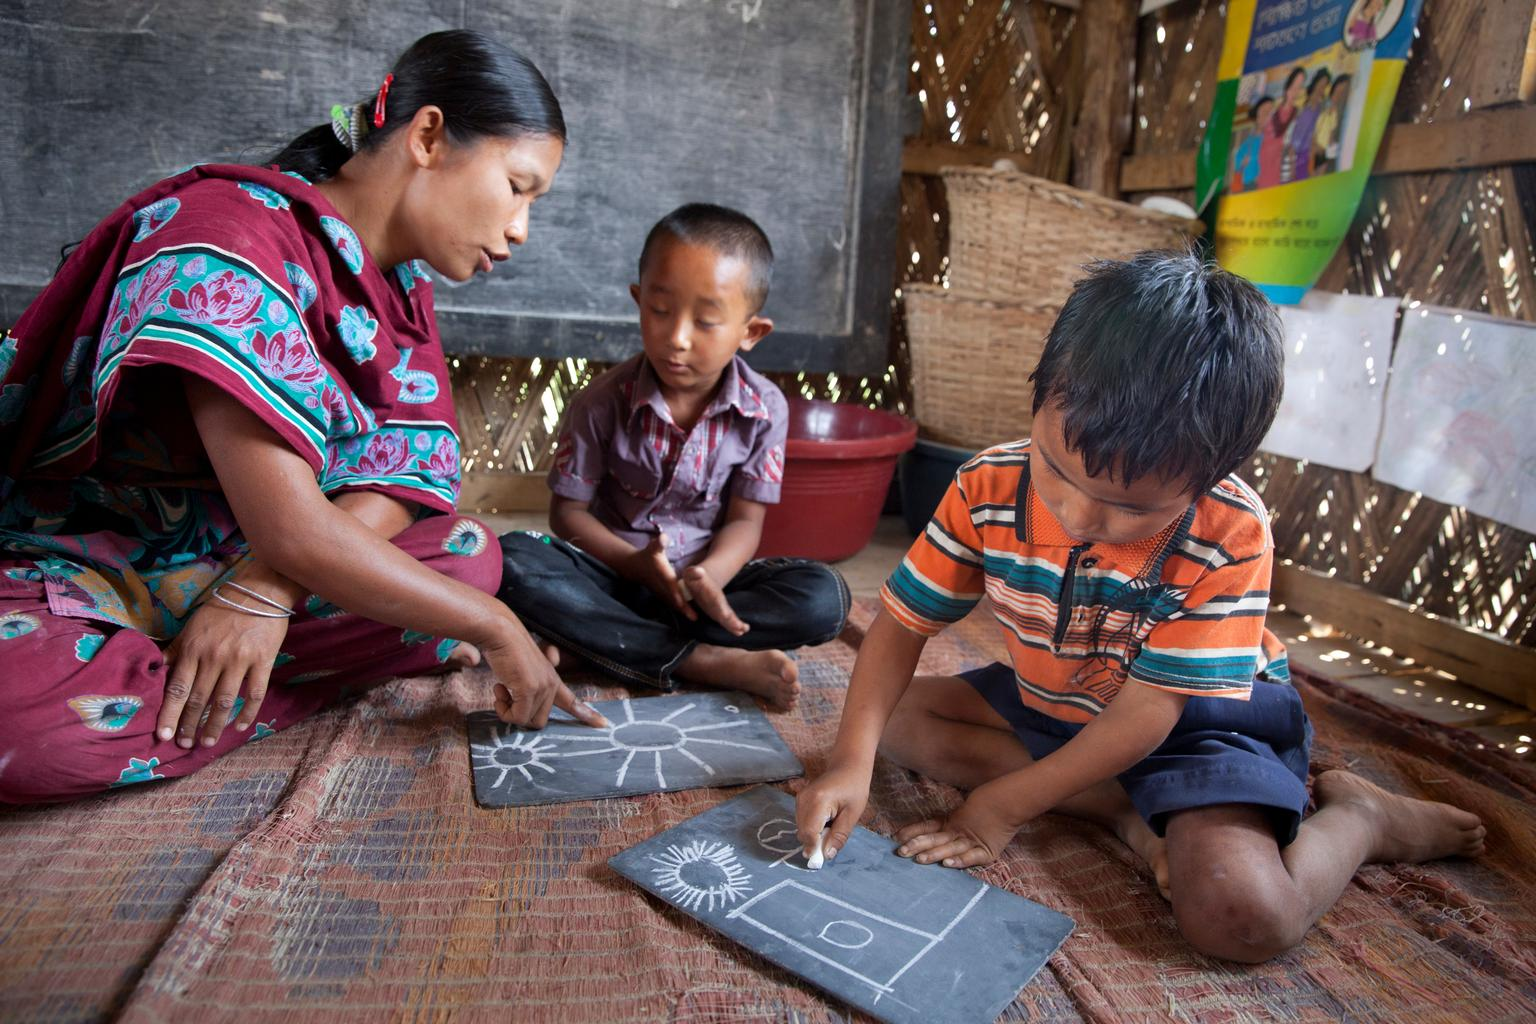 Chinta Debi, helps children with their drawings during classes at the Murungkhang Para Centre in Rajbila, Bangladesh.